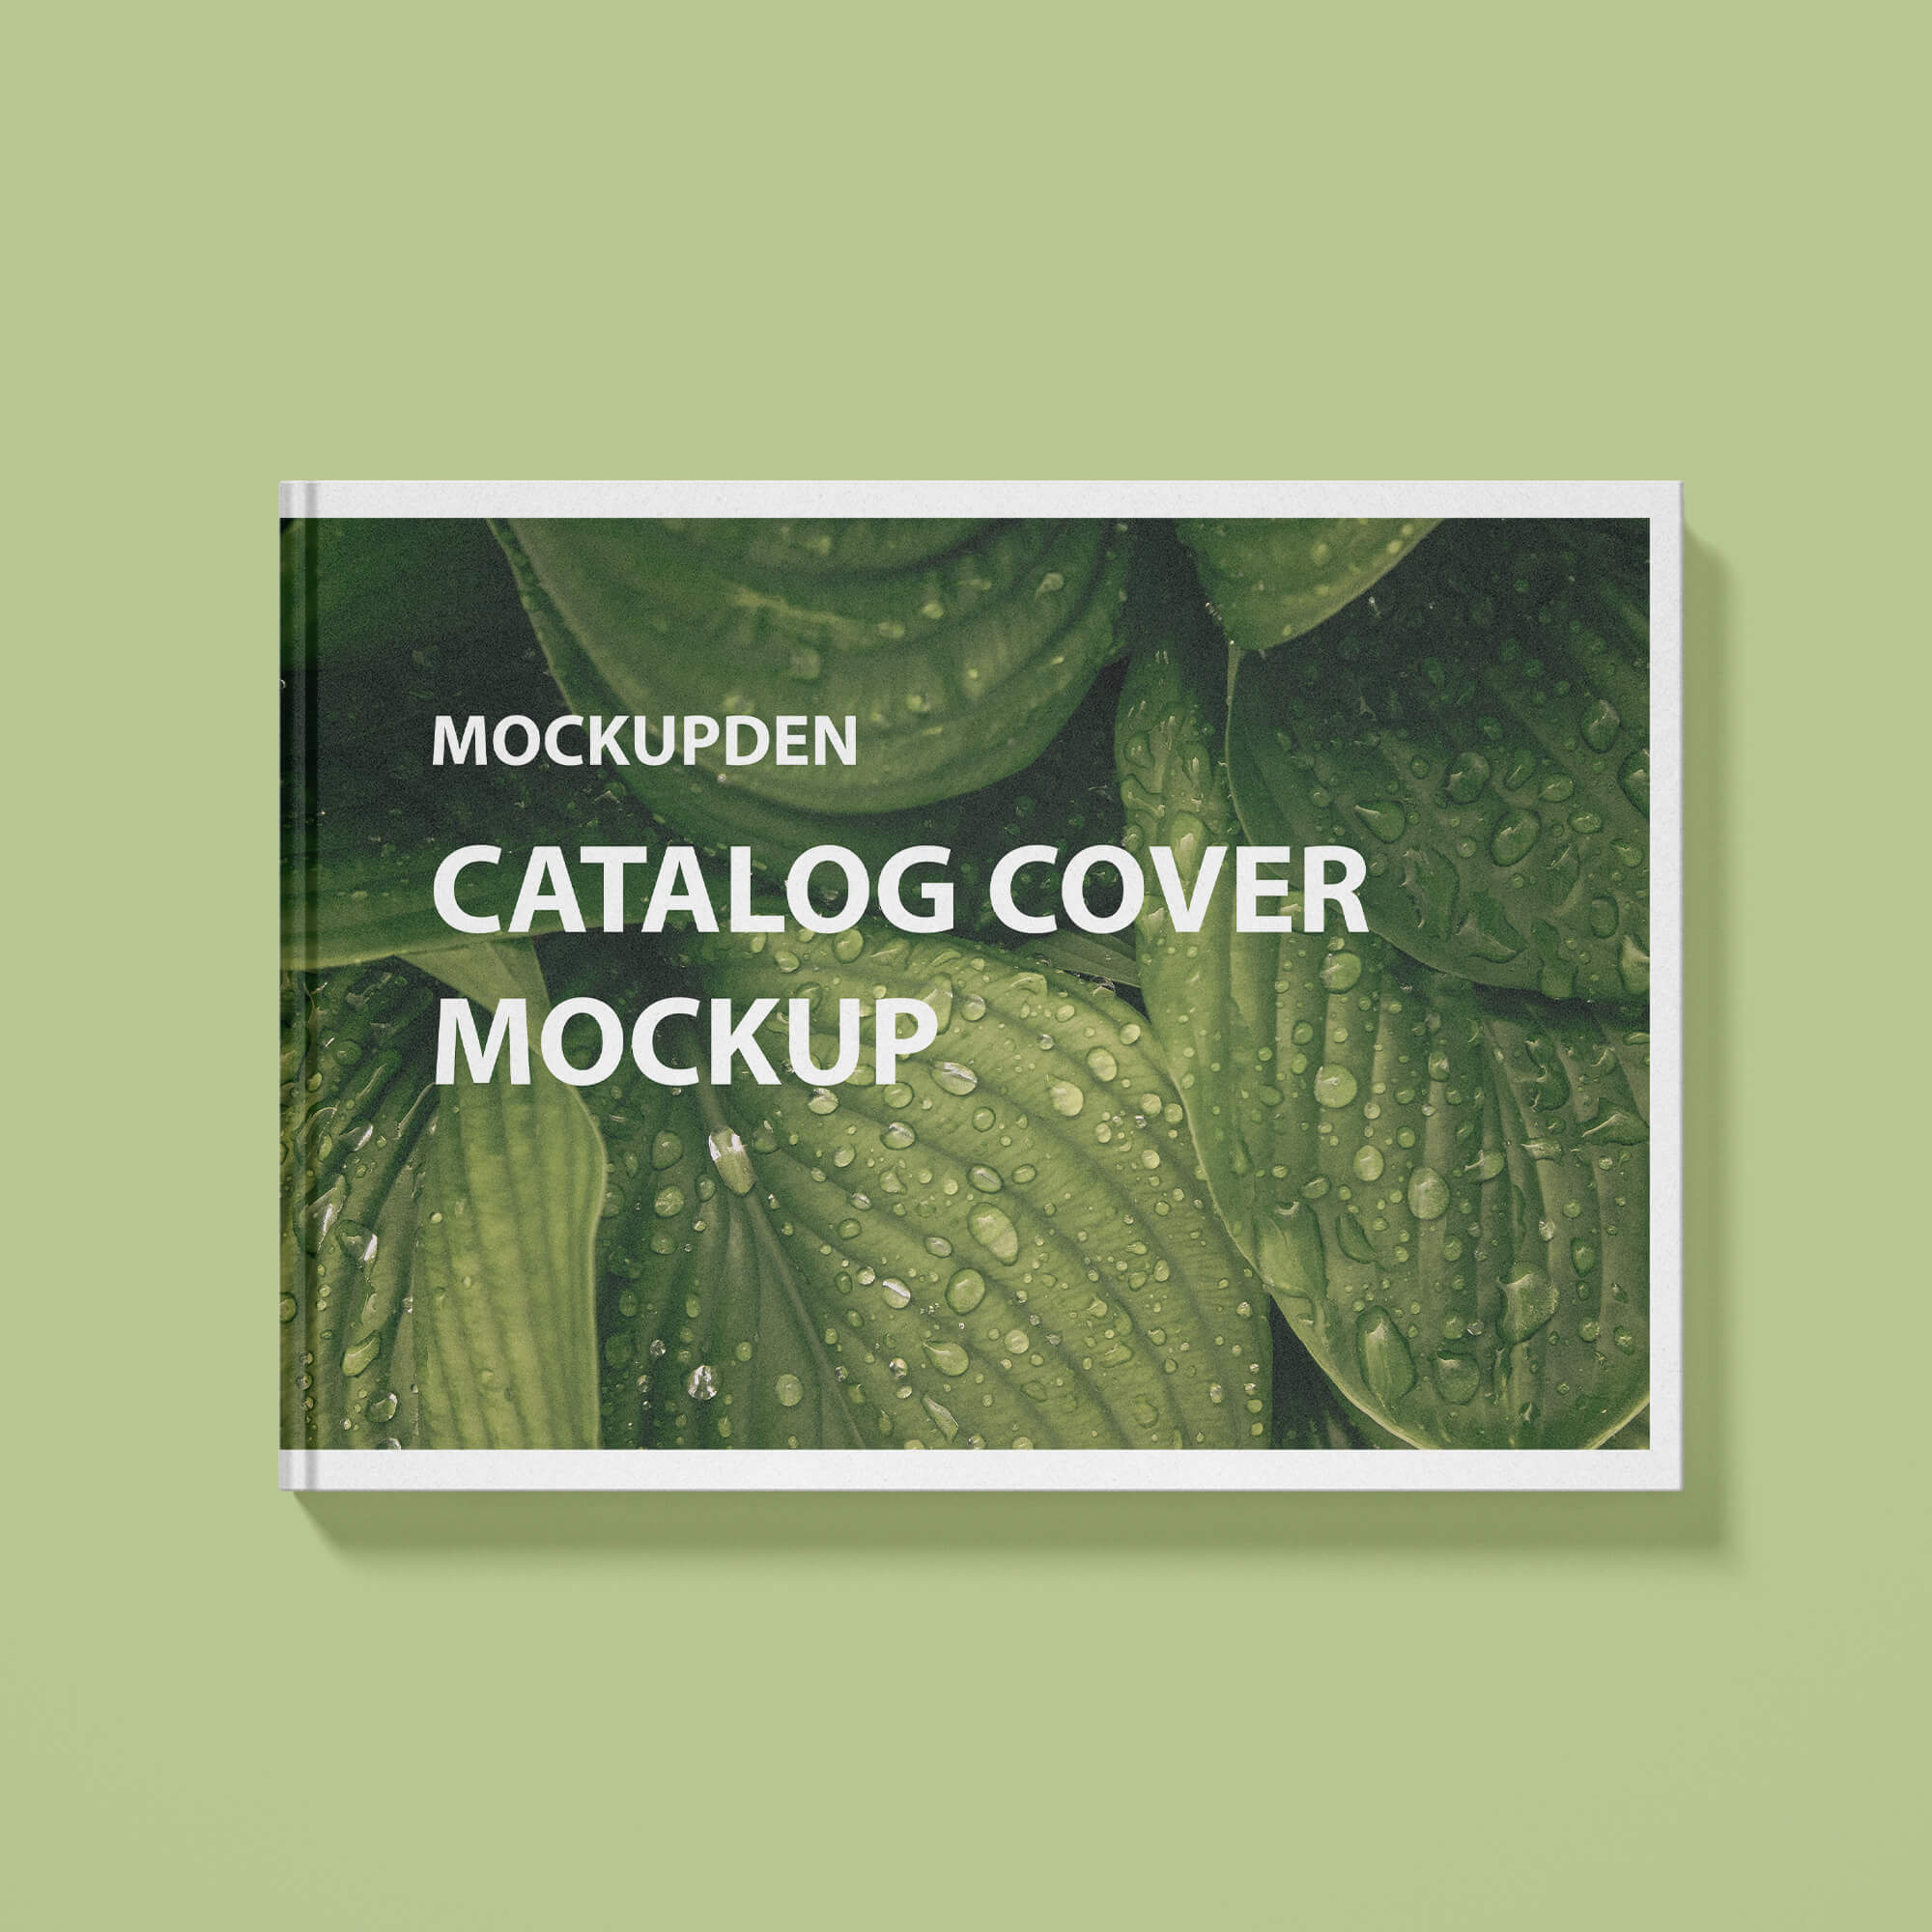 Design Free Catalog Cover Mockup PSD Template